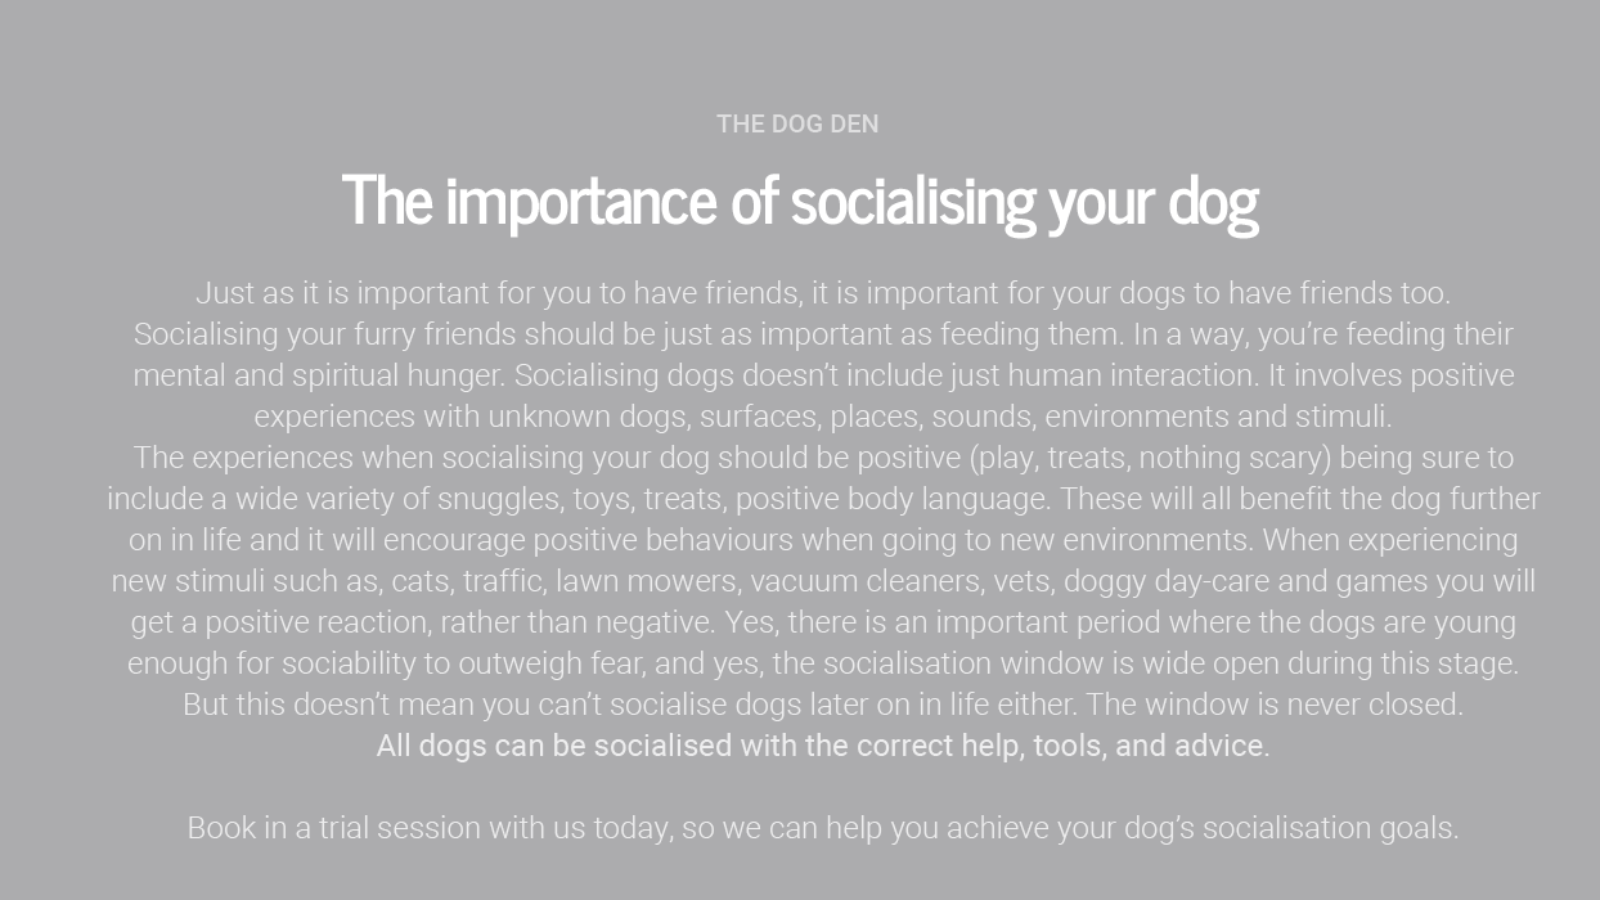 https://www.thedogden.co.nz/wp-content/uploads/2019/12/socialisation-1600x900.png